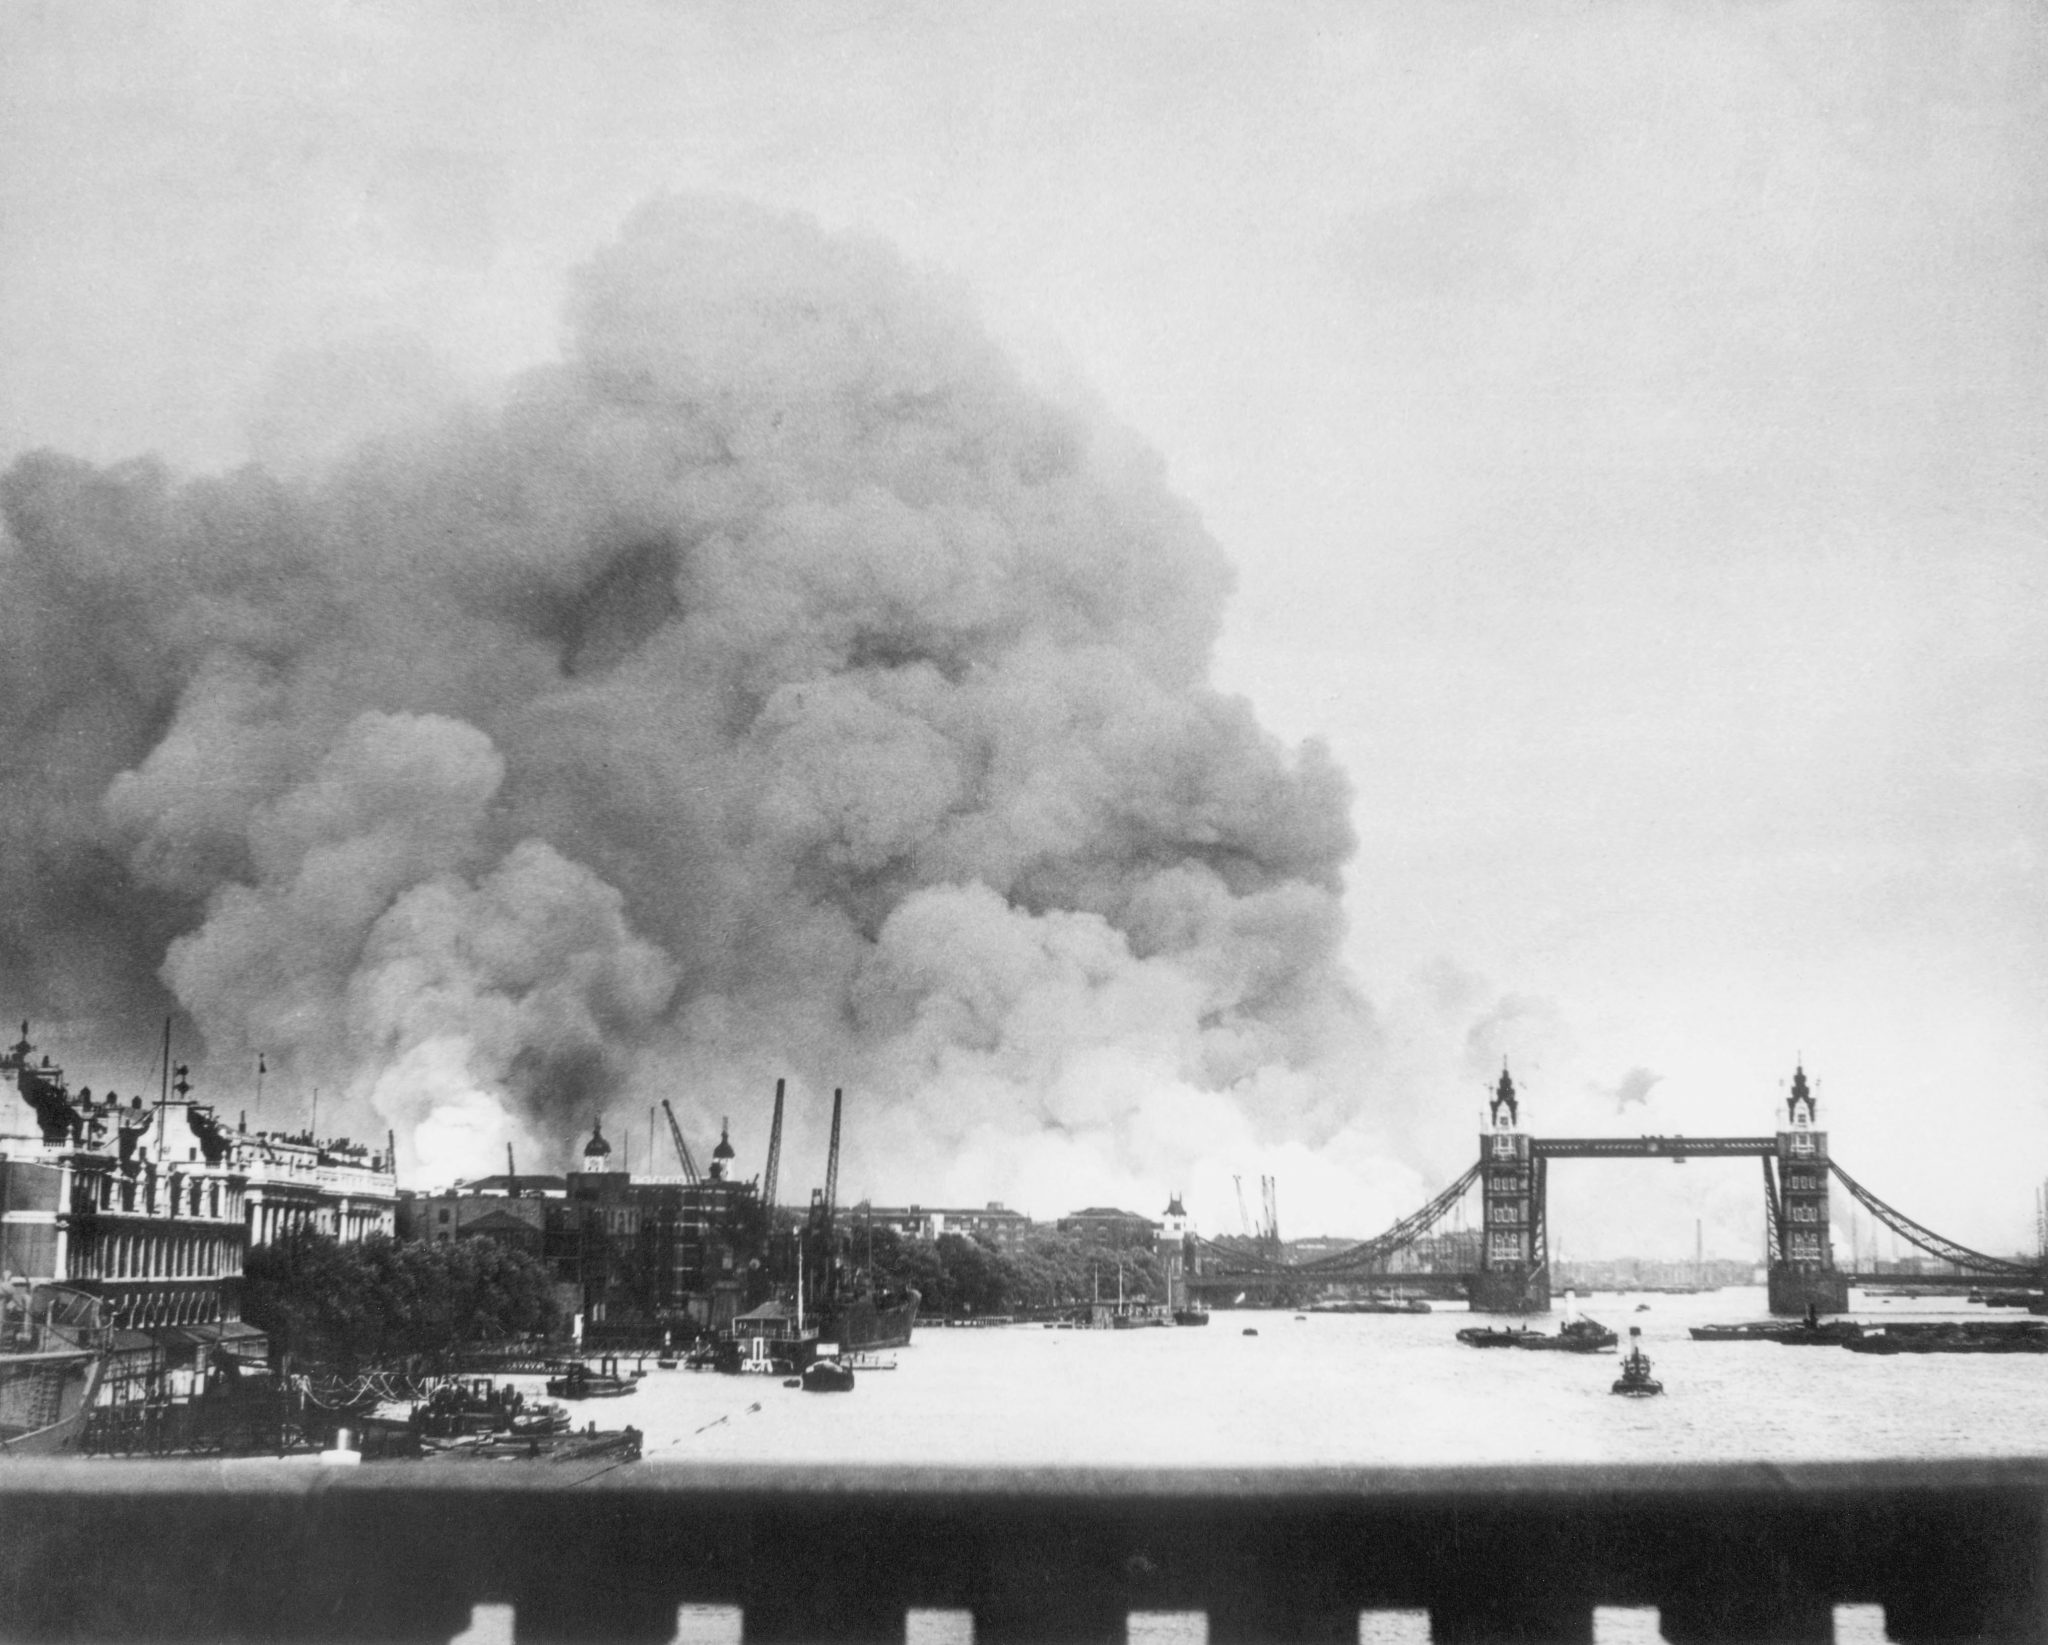 London brennt nach einem deutschen Luftangriff im September 1940 Foto: picture-alliance / akg-images